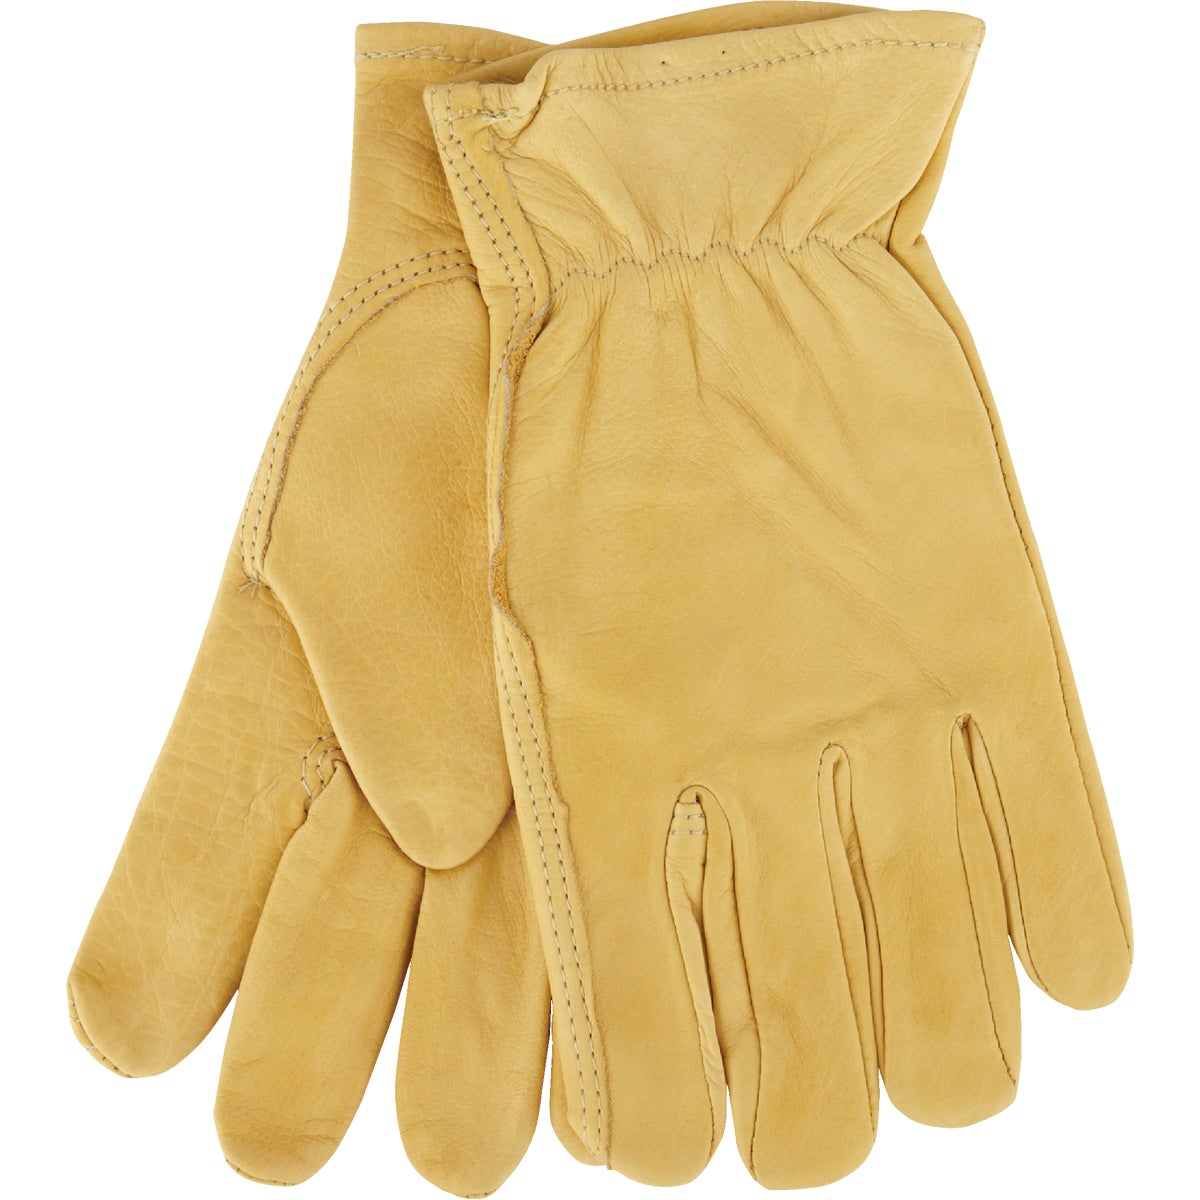 LRG COWHIDE GRAIN GLOVE - 710323 by Do it Best